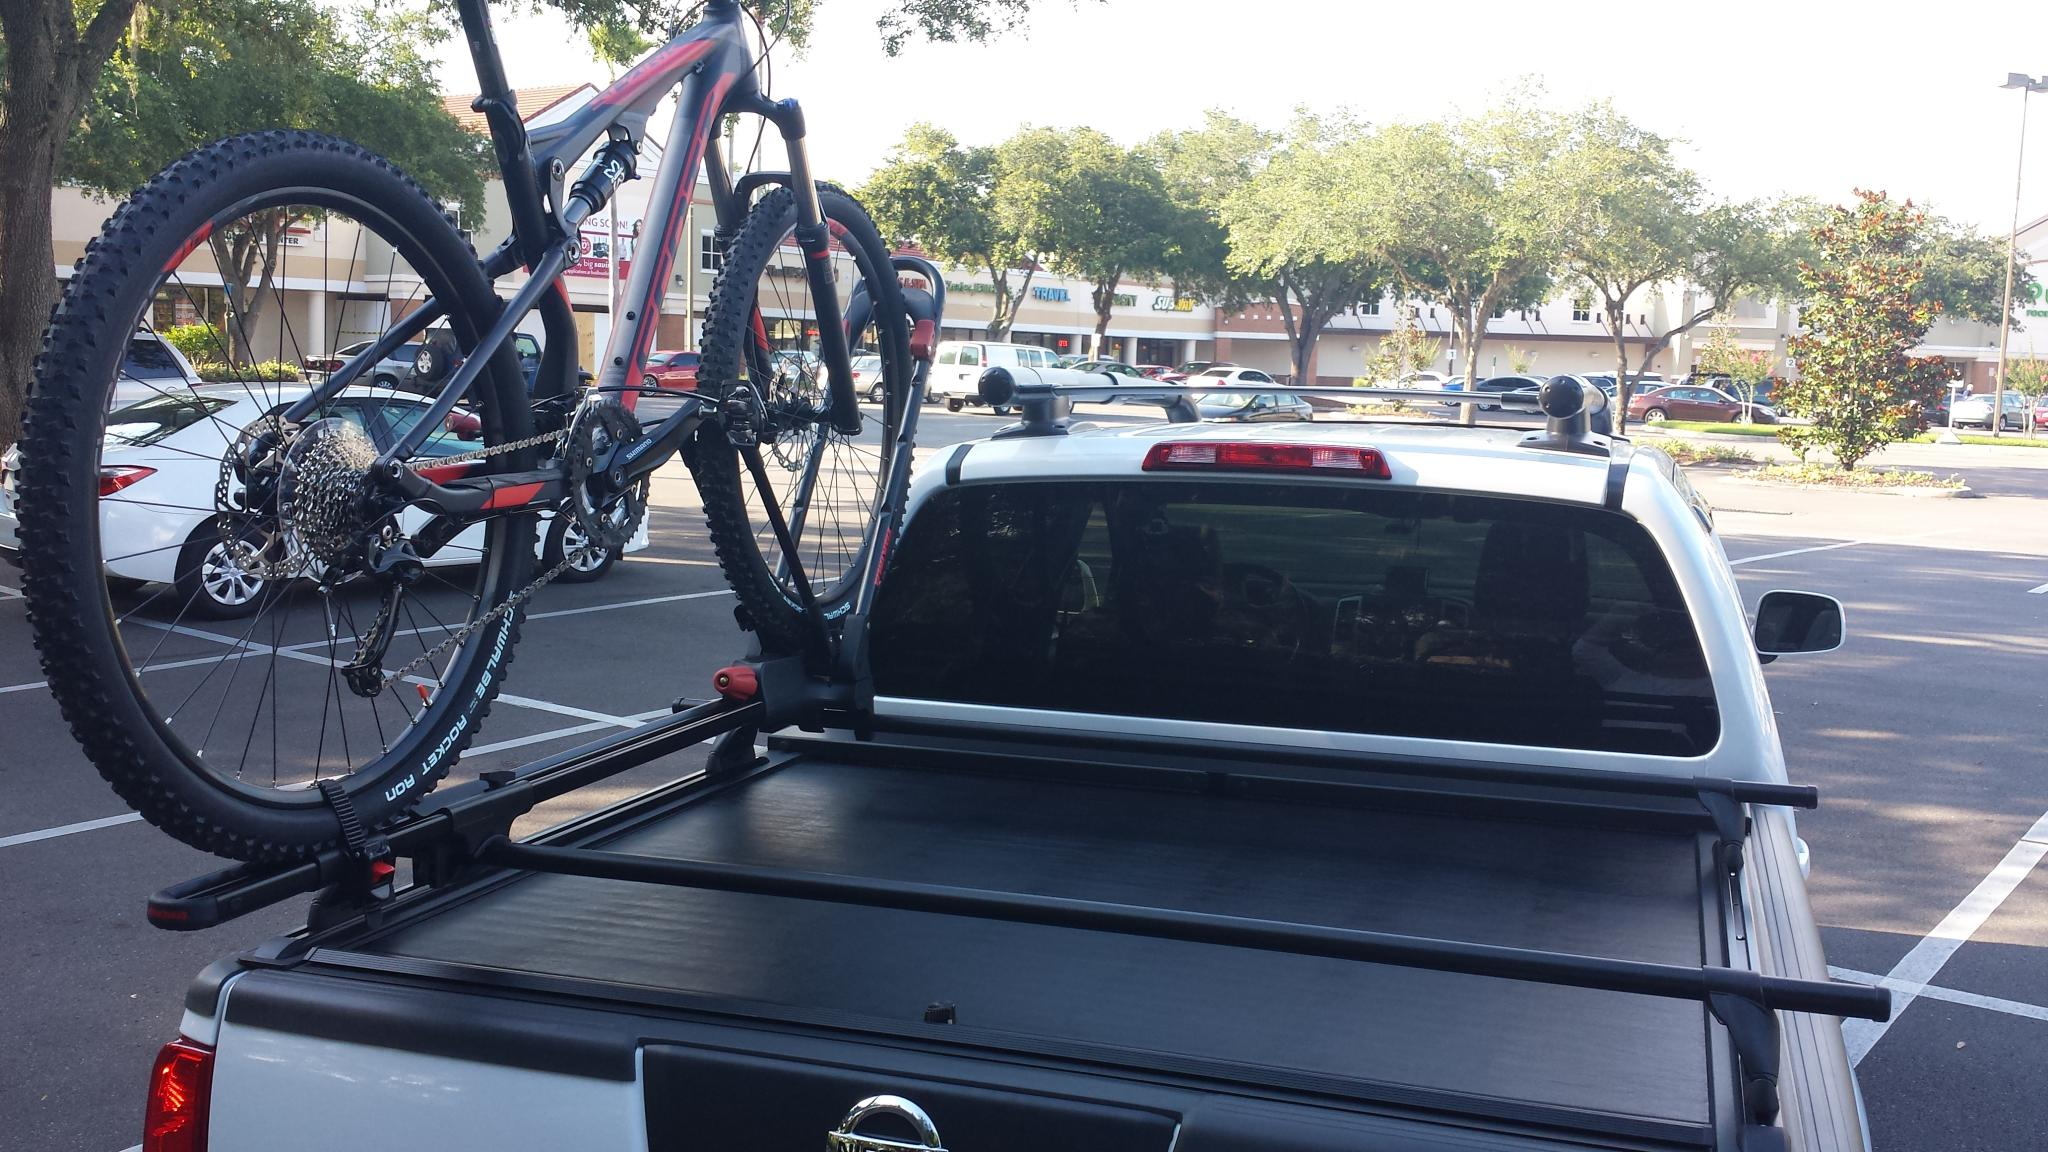 Lock Bike In Truck Bed